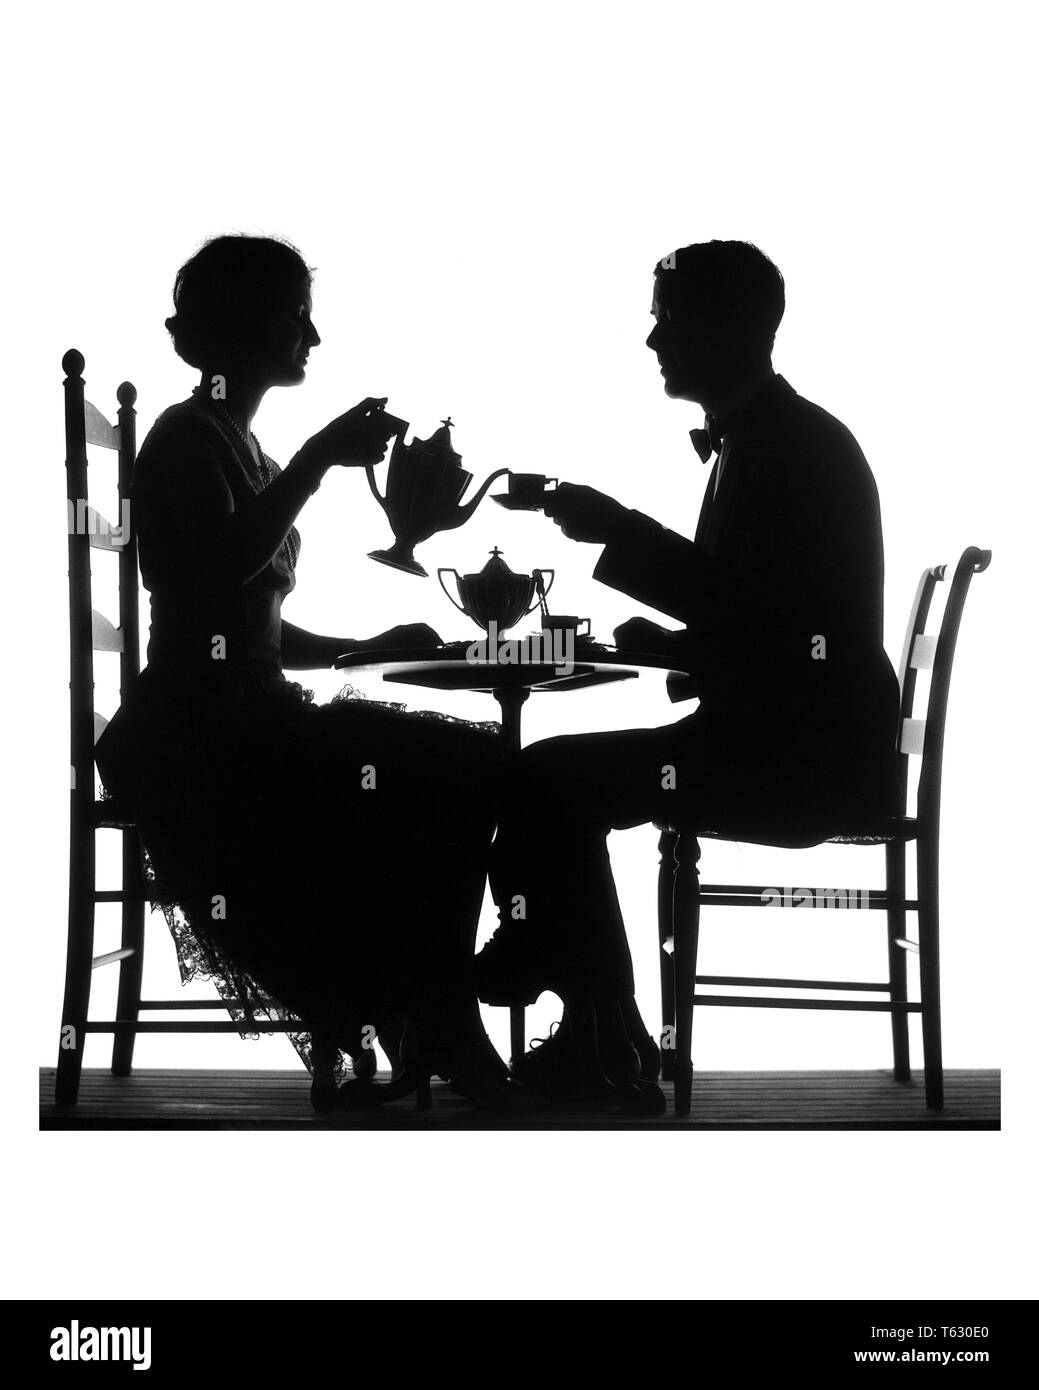 1920s SILHOUETTE ANONYMOUS MAN AND WOMAN AT TEA WOMAN POURING MAN HOLDING CUP AND SAUCER BOTH SITTING IN CHAIRS AT SMALL TABLE - s1290 HAR001 HARS HUSBANDS HOME LIFE LUXURY COPY SPACE FRIENDSHIP FULL-LENGTH LADIES PERSONS MALES SILHOUETTES B&W OUTLINE PARTNER DATING BEVERAGE SILHOUETTED AND ATTRACTION CONNECTION COURTSHIP CONCEPTUAL STILL LIFE STYLISH MAN'S ANONYMOUS POSSIBILITY COOPERATION MID-ADULT MID-ADULT MAN MID-ADULT WOMAN SOCIAL ACTIVITY TOGETHERNESS WIVES AFTERNOON BLACK AND WHITE COURTING HAR001 OLD FASHIONED TEA FOR TWO Stock Photo